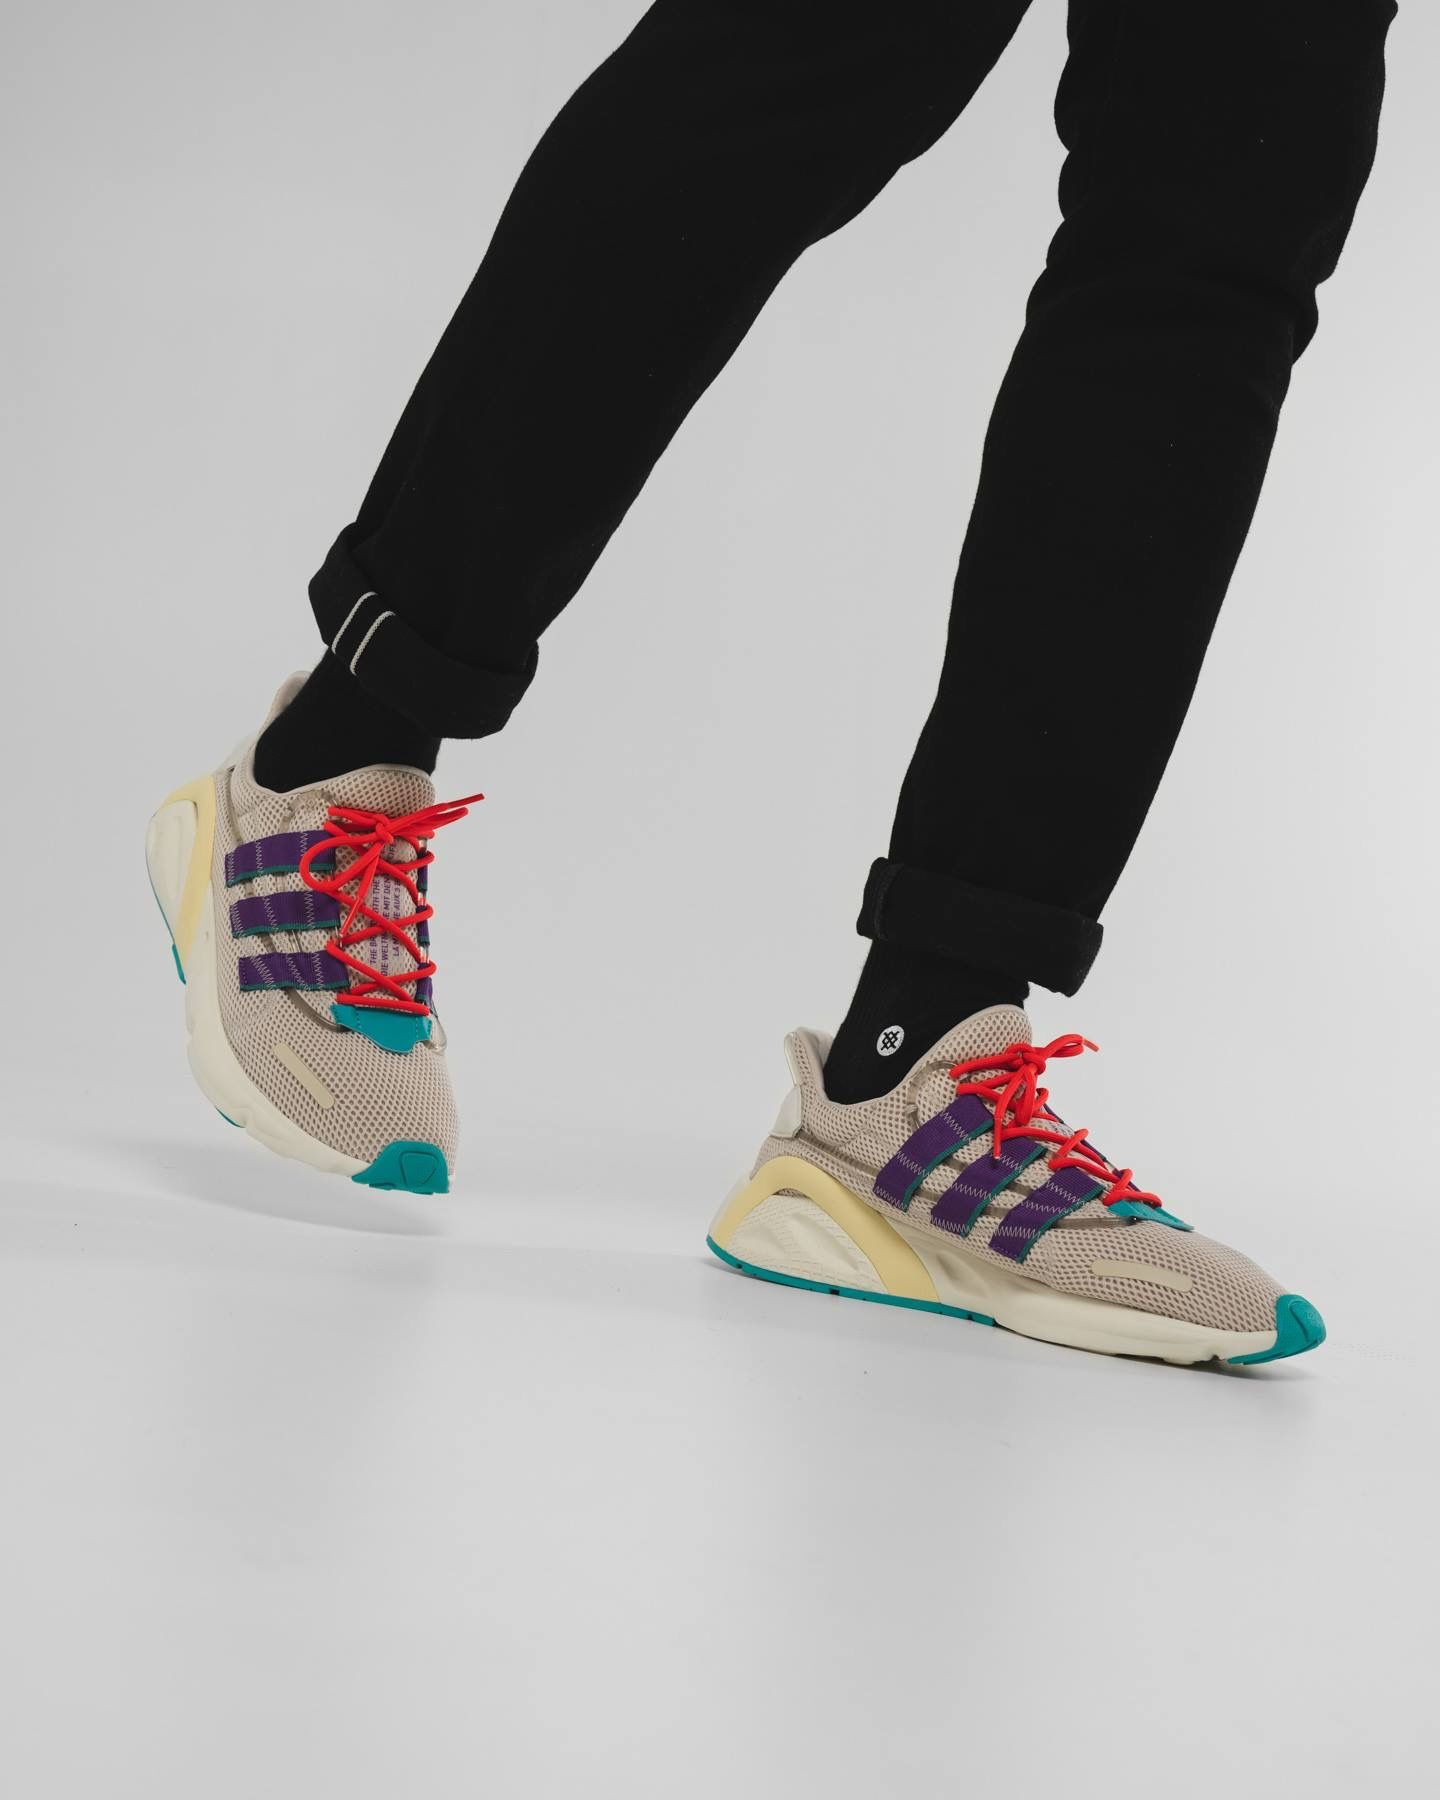 384a1bb1cd adidas Originals Lxcon | ШЕЛУХА in 2019 | Shoes, Sneakers, Adidas